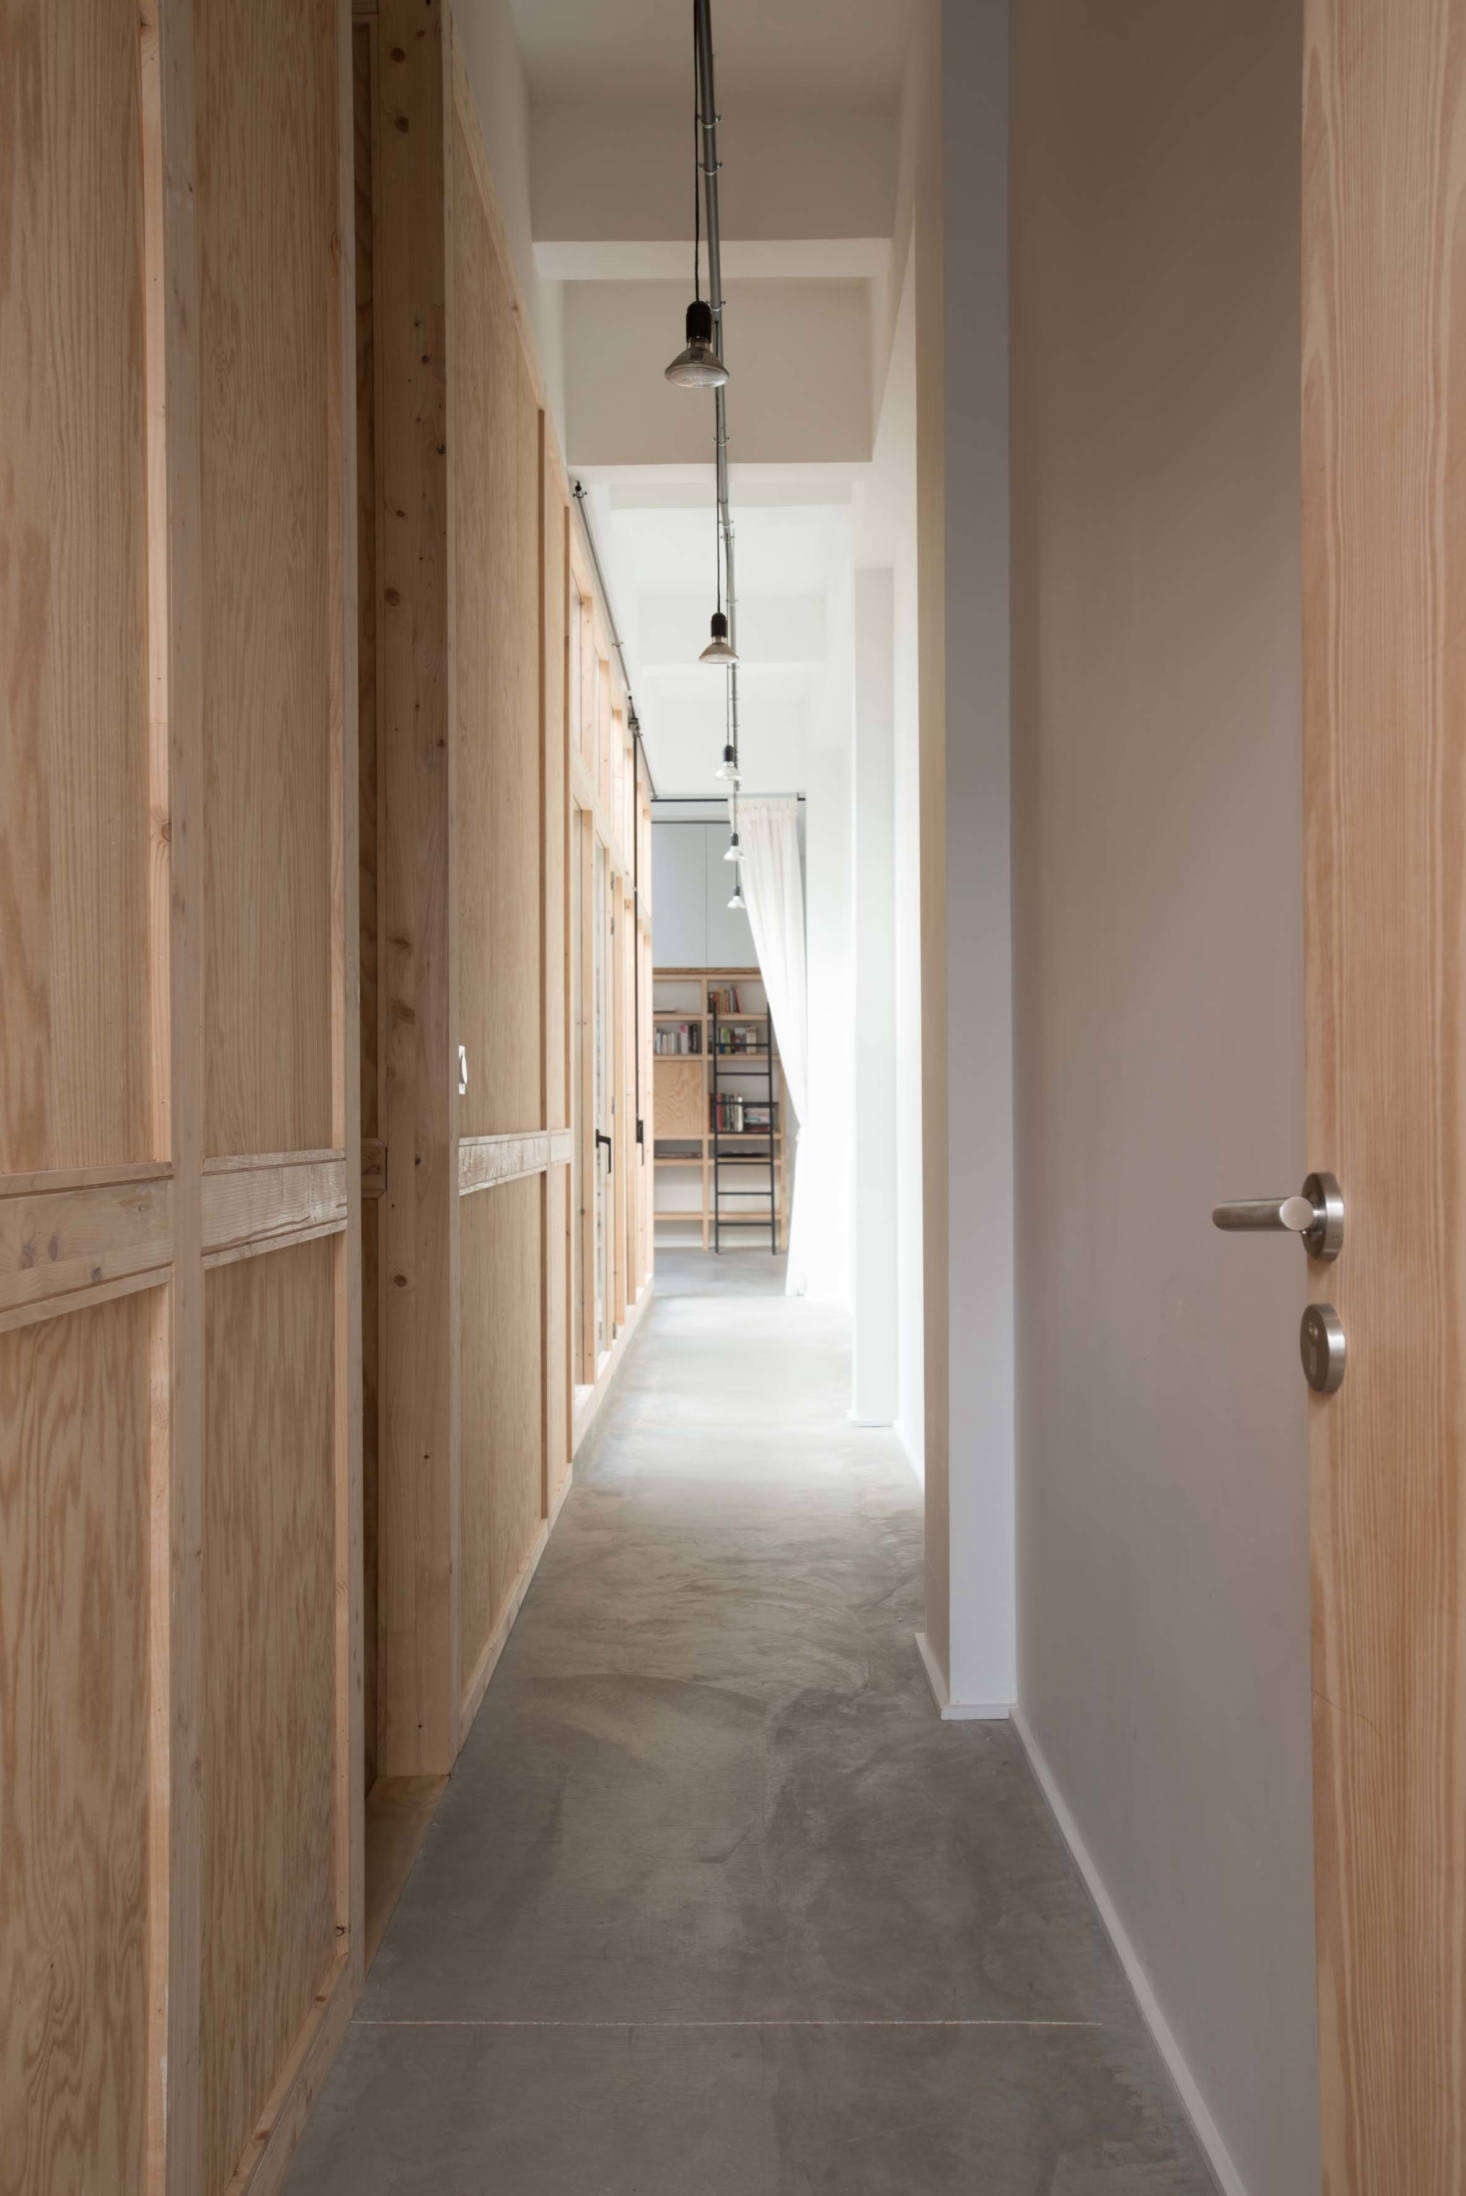 Just off the entrance, a plywood hallway leads to the open-plan living room.